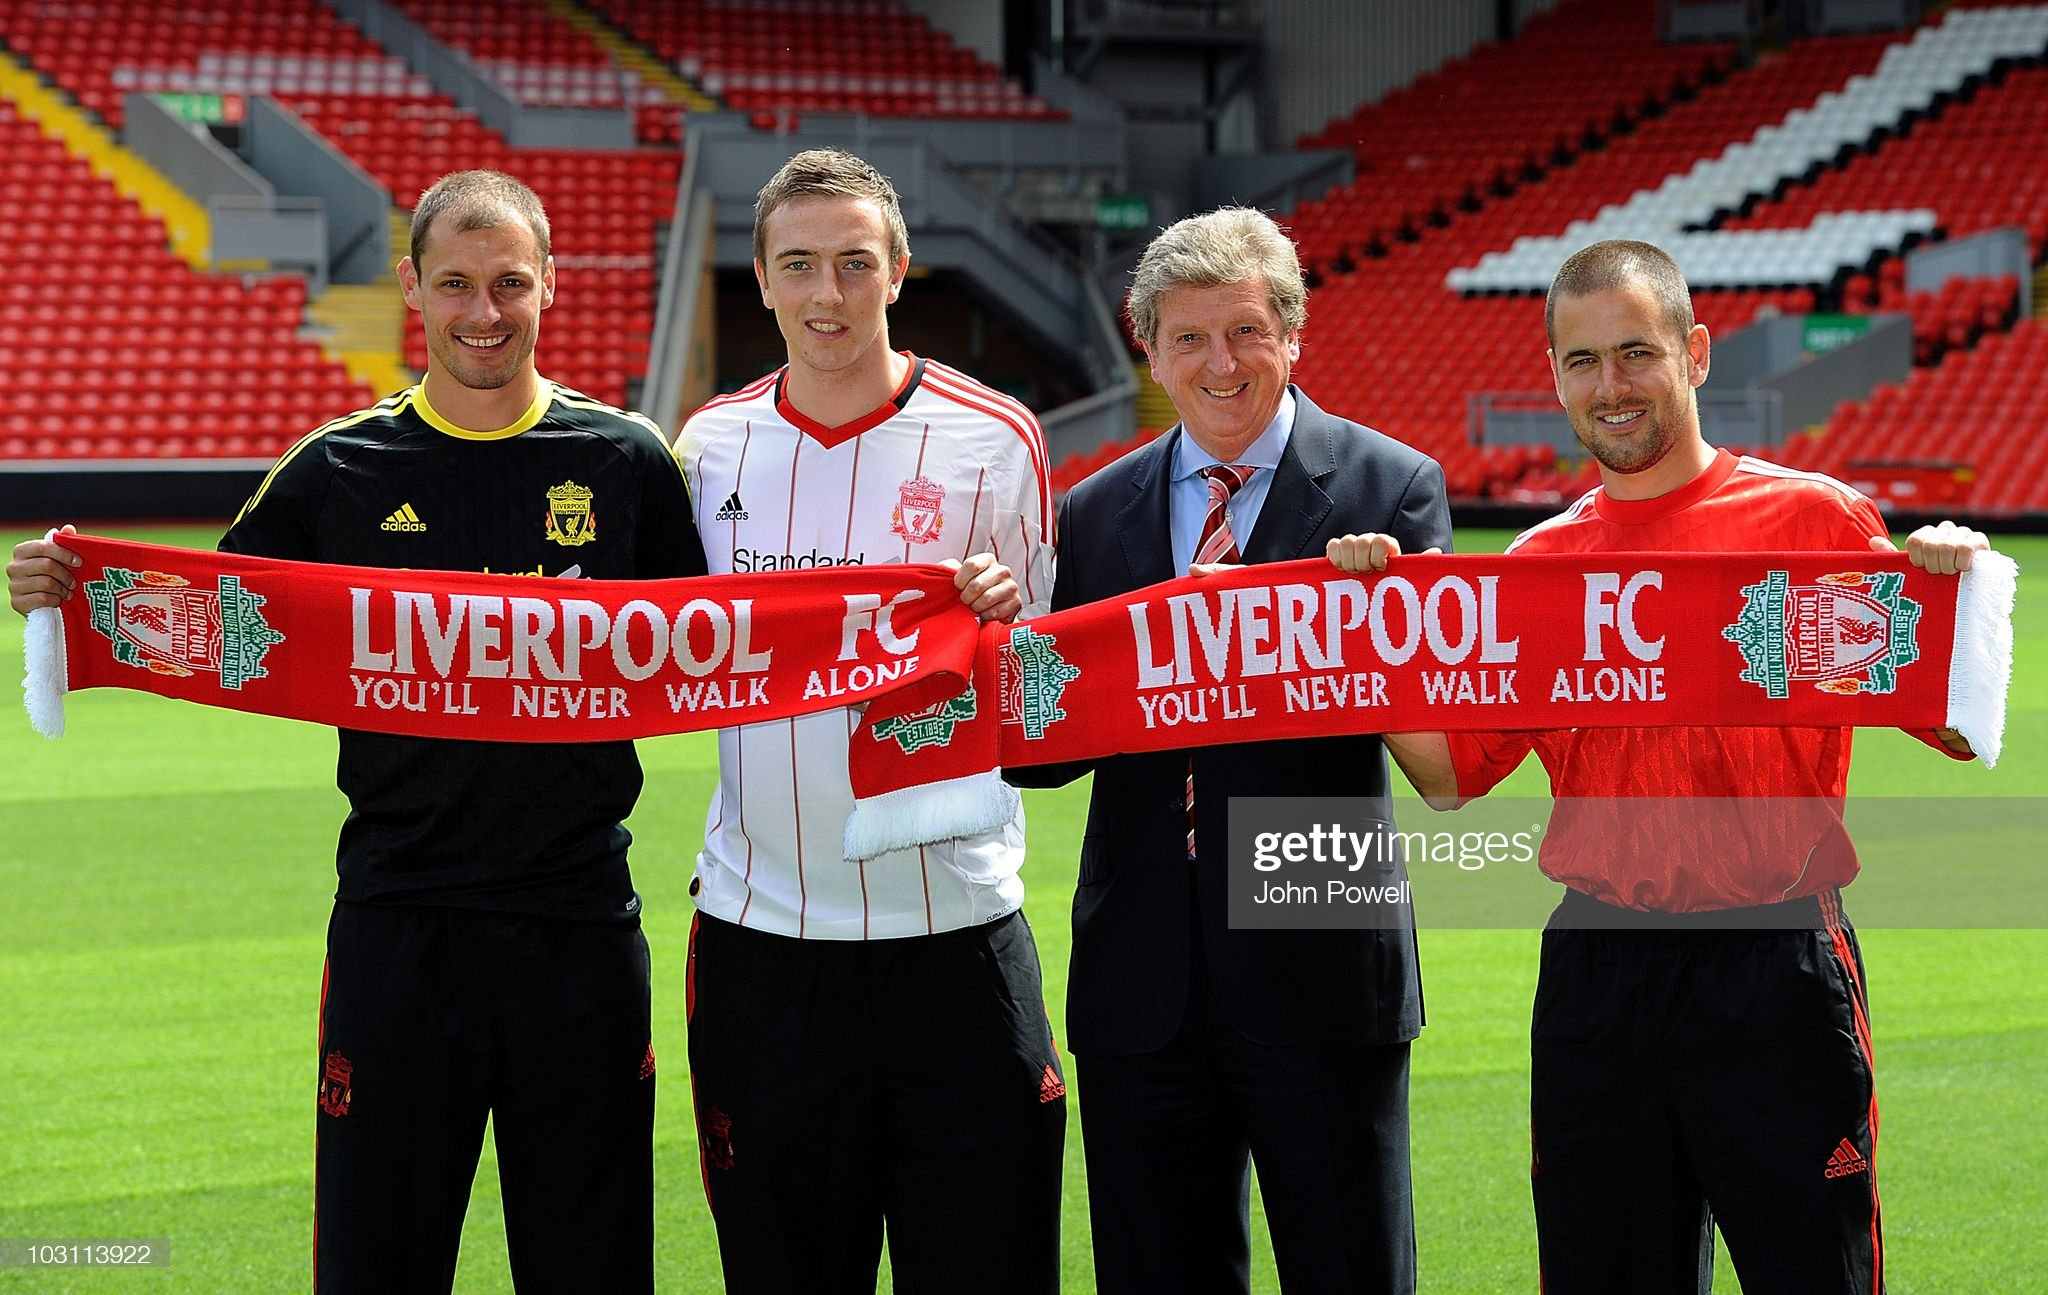 https://media.gettyimages.com/photos/liverpools-new-signings-milan-jovanovic-danny-wilson-and-joe-cole-picture-id103113922?s=2048x2048